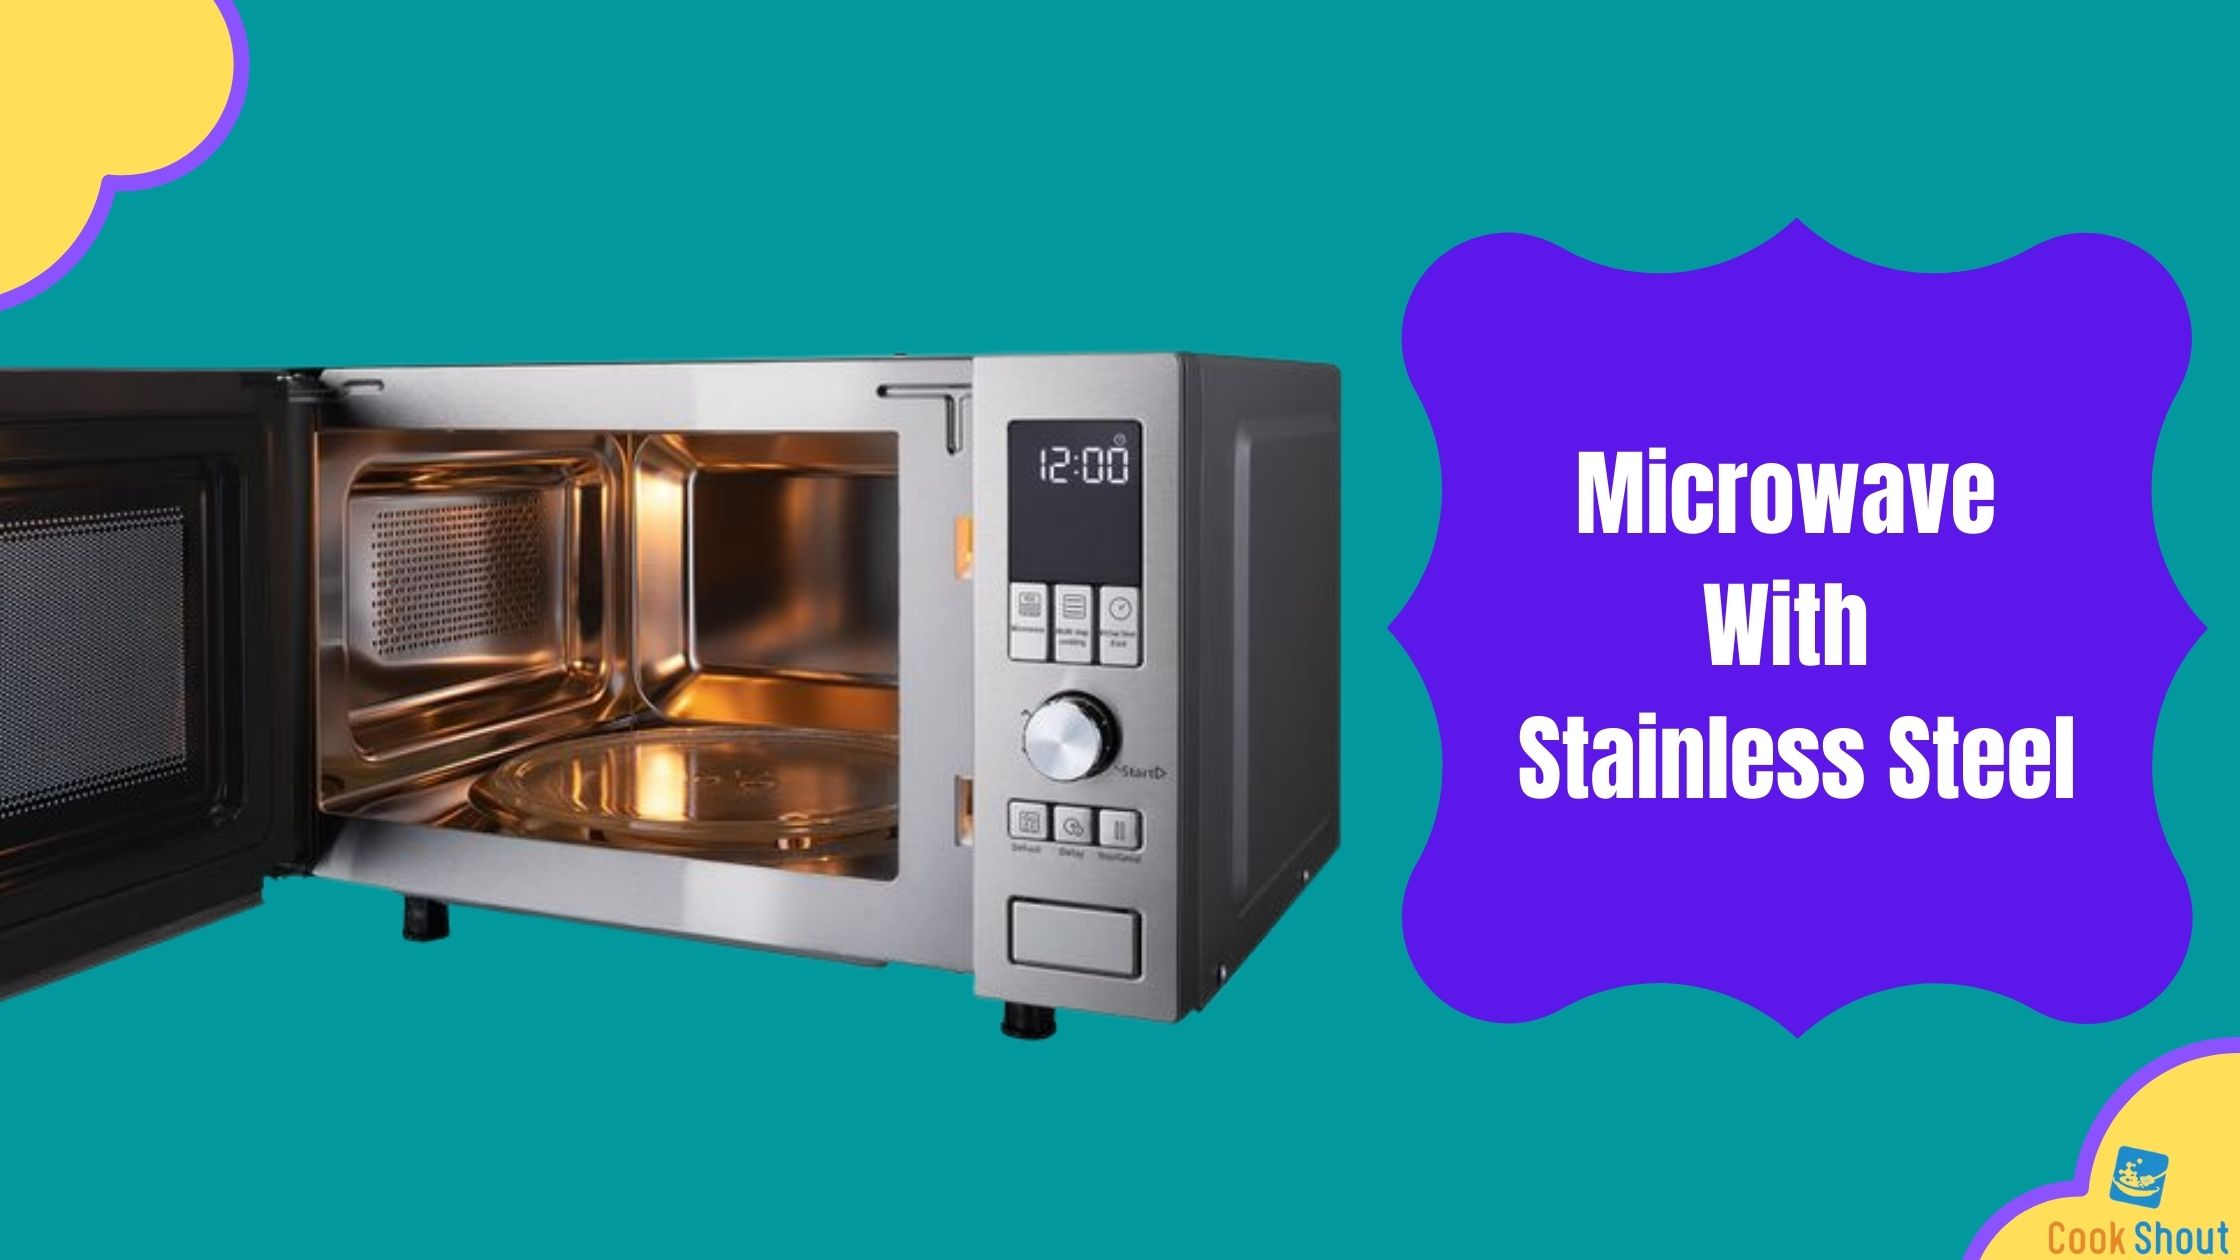 Microwave With Stainless Steel 2021